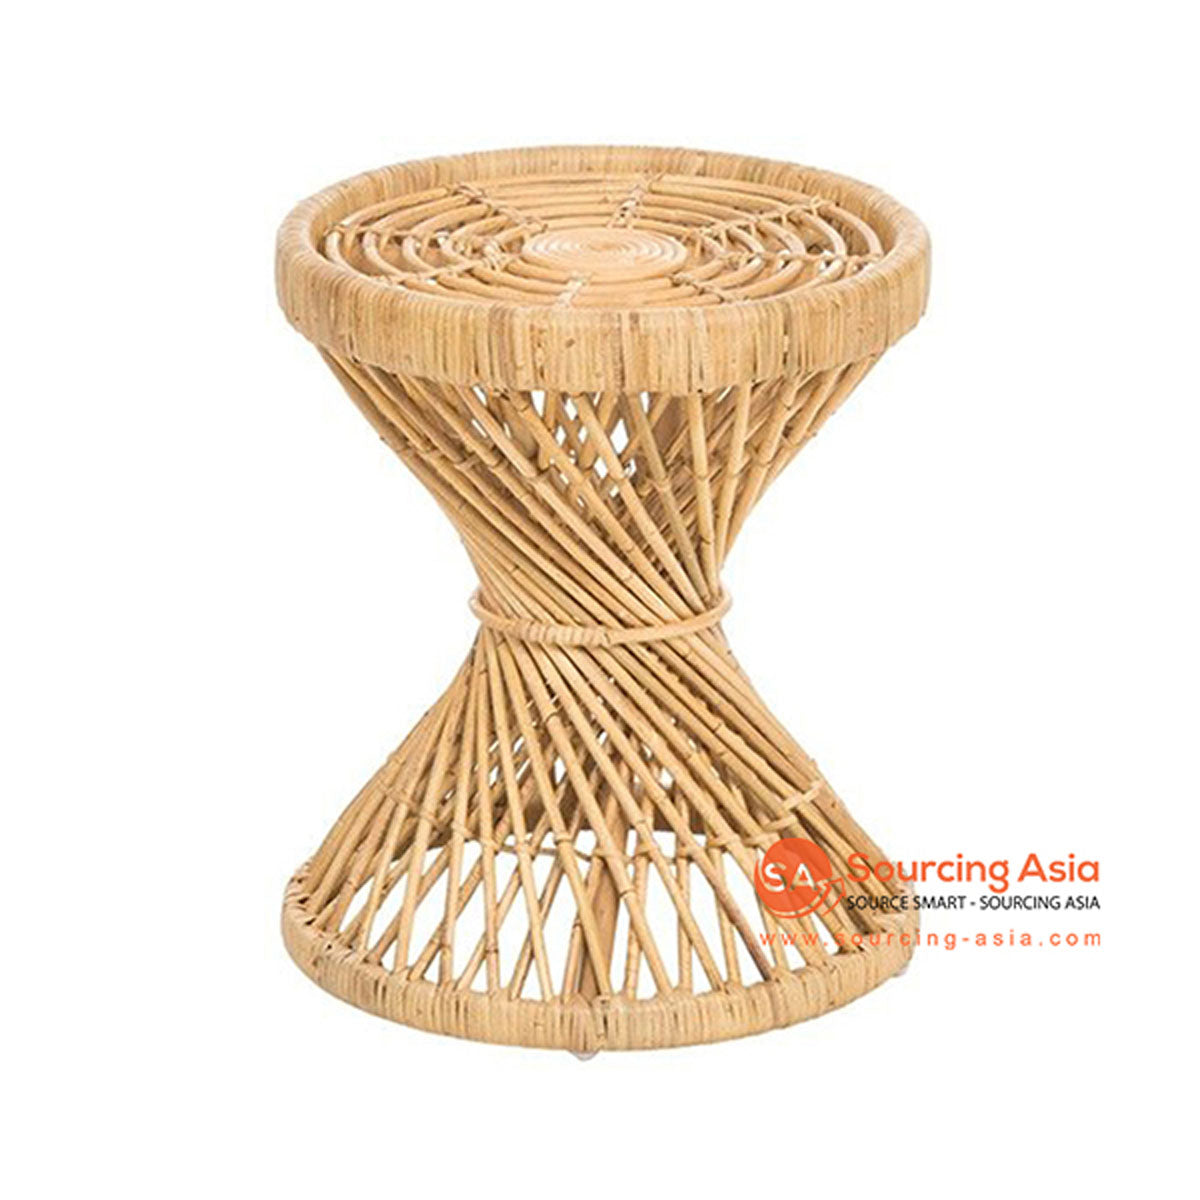 SHL155 NATURAL RATTAN TWISTED TABLE WITH ROUND TOP